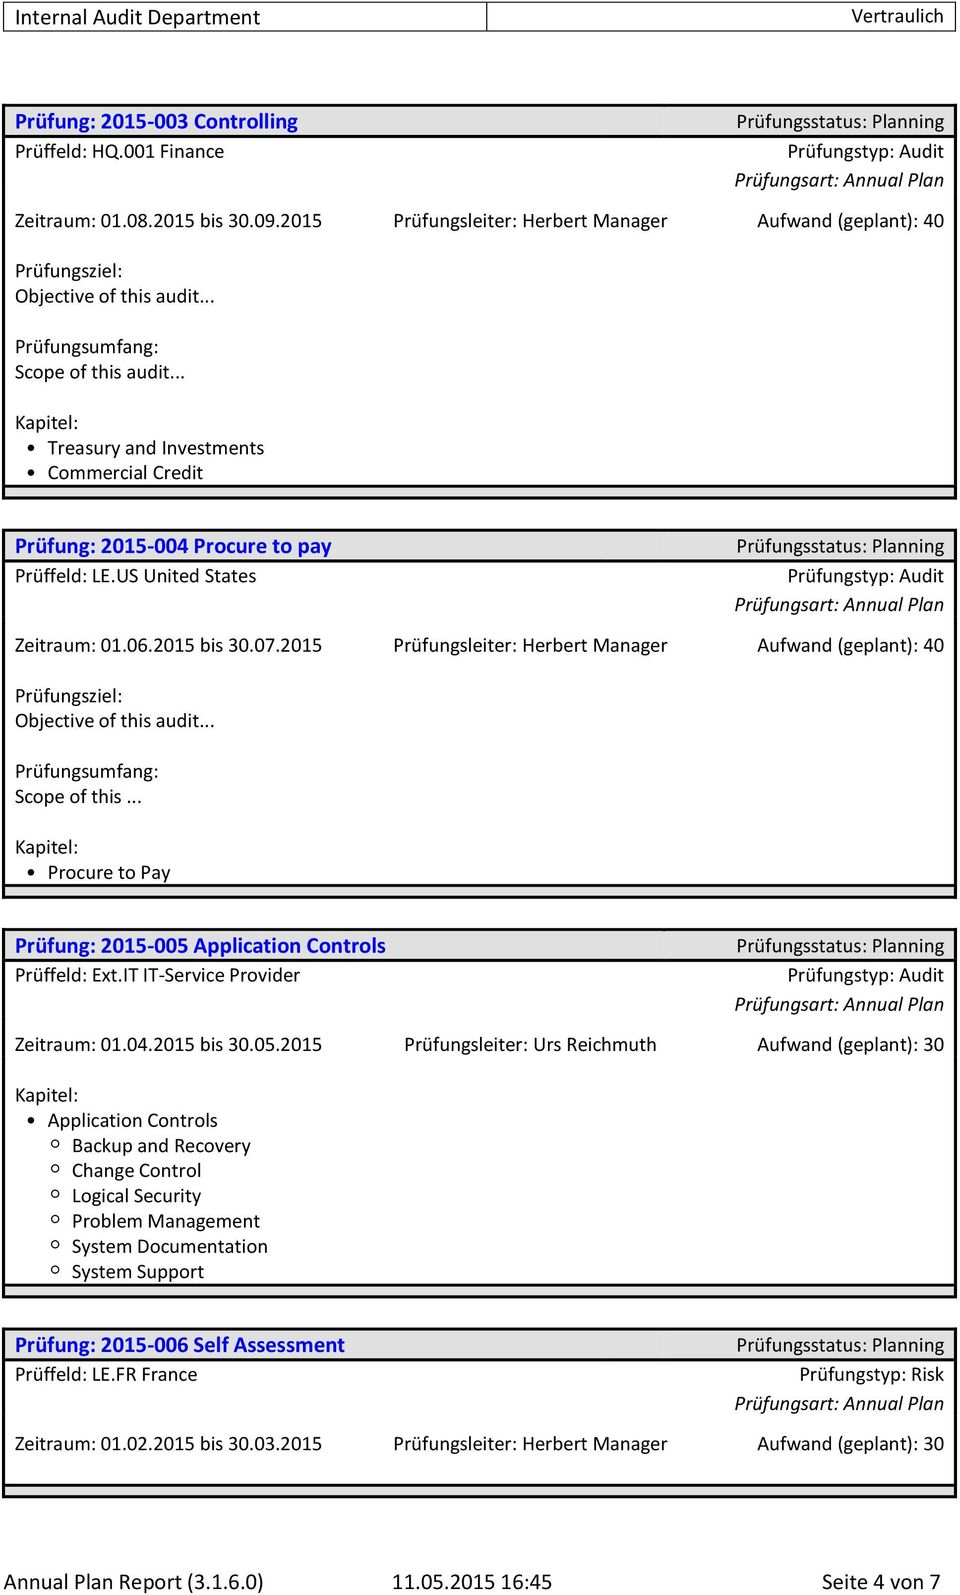 2015 Prüfungsleiter: Herbert Manager Aufwand (geplant): 40 Prüfungsziel: Objective of this audit... Scope of this... Procure to Pay Prüfung: 2015-005 Application Controls Prüffeld: Ext.